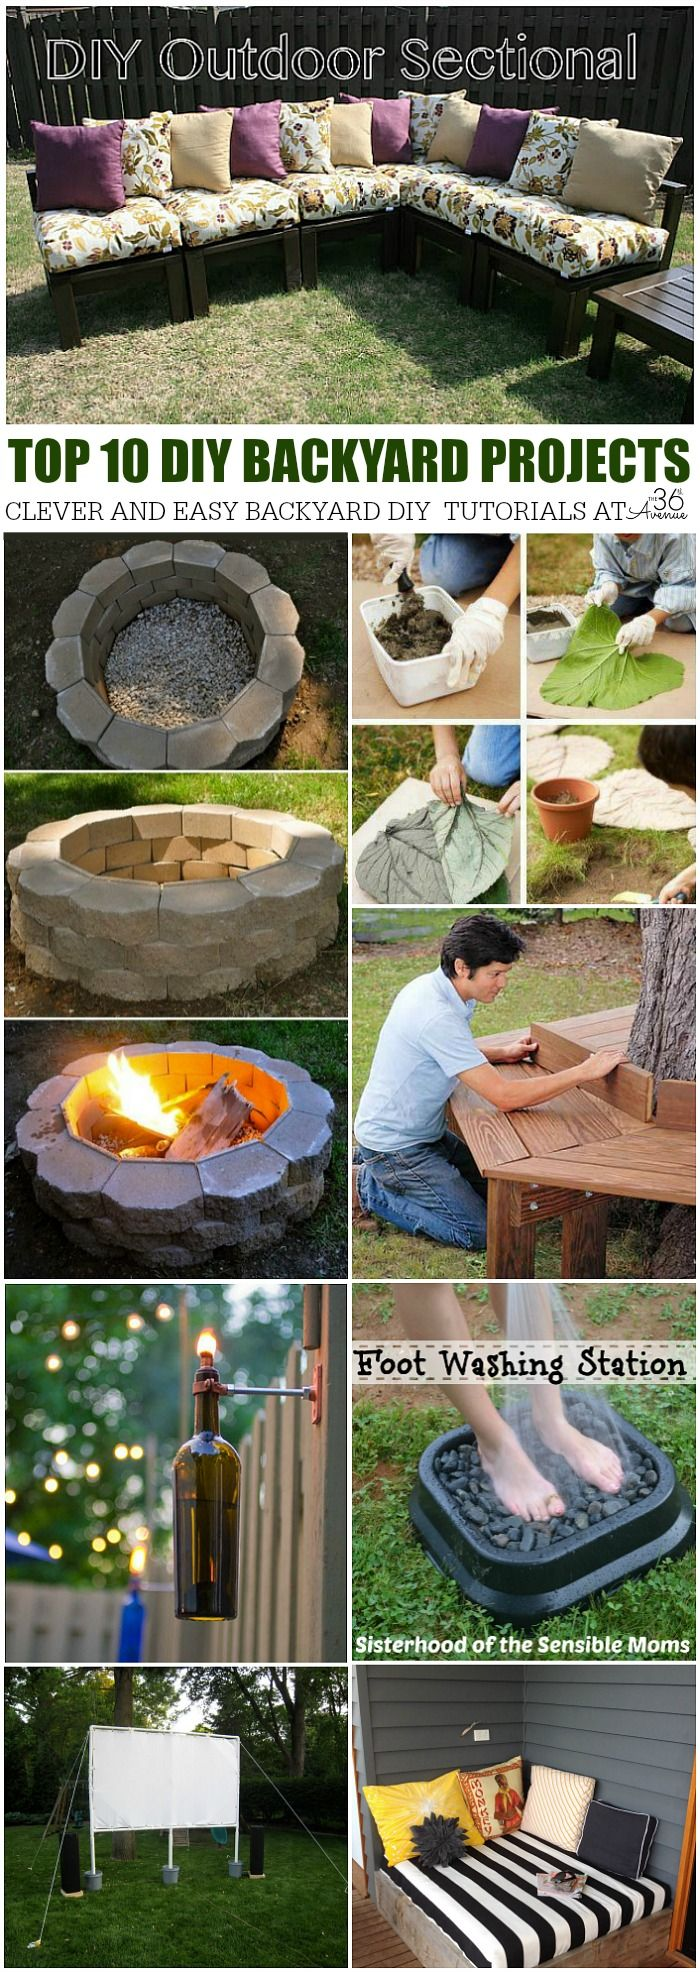 DIY Backyard Top 10 Projects for this summer! Can't wait to start spending more time outdoors.